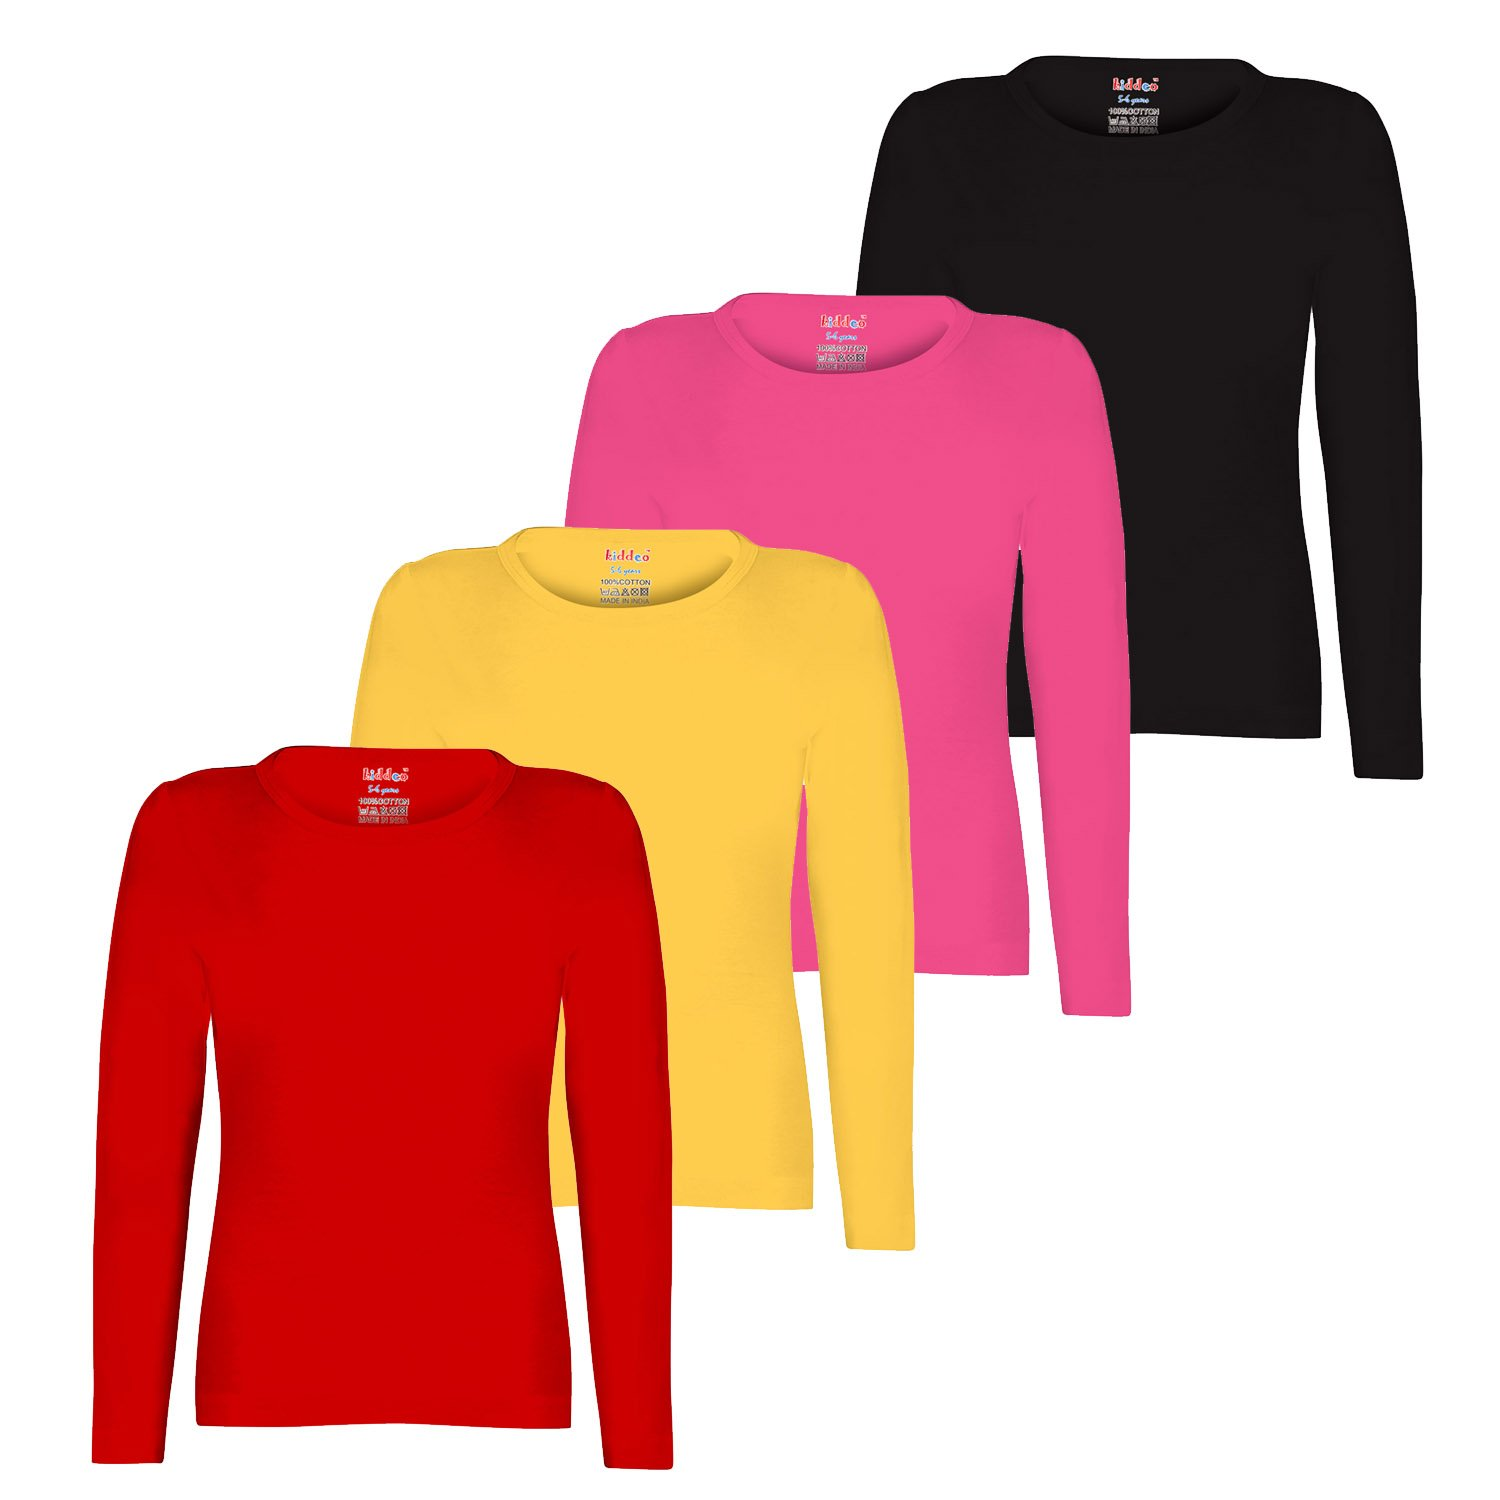 aa8f743b6323 Kiddeo Girl s Plain Full Sleeves t Shirts - Pack of 4  Amazon.in  Clothing    Accessories